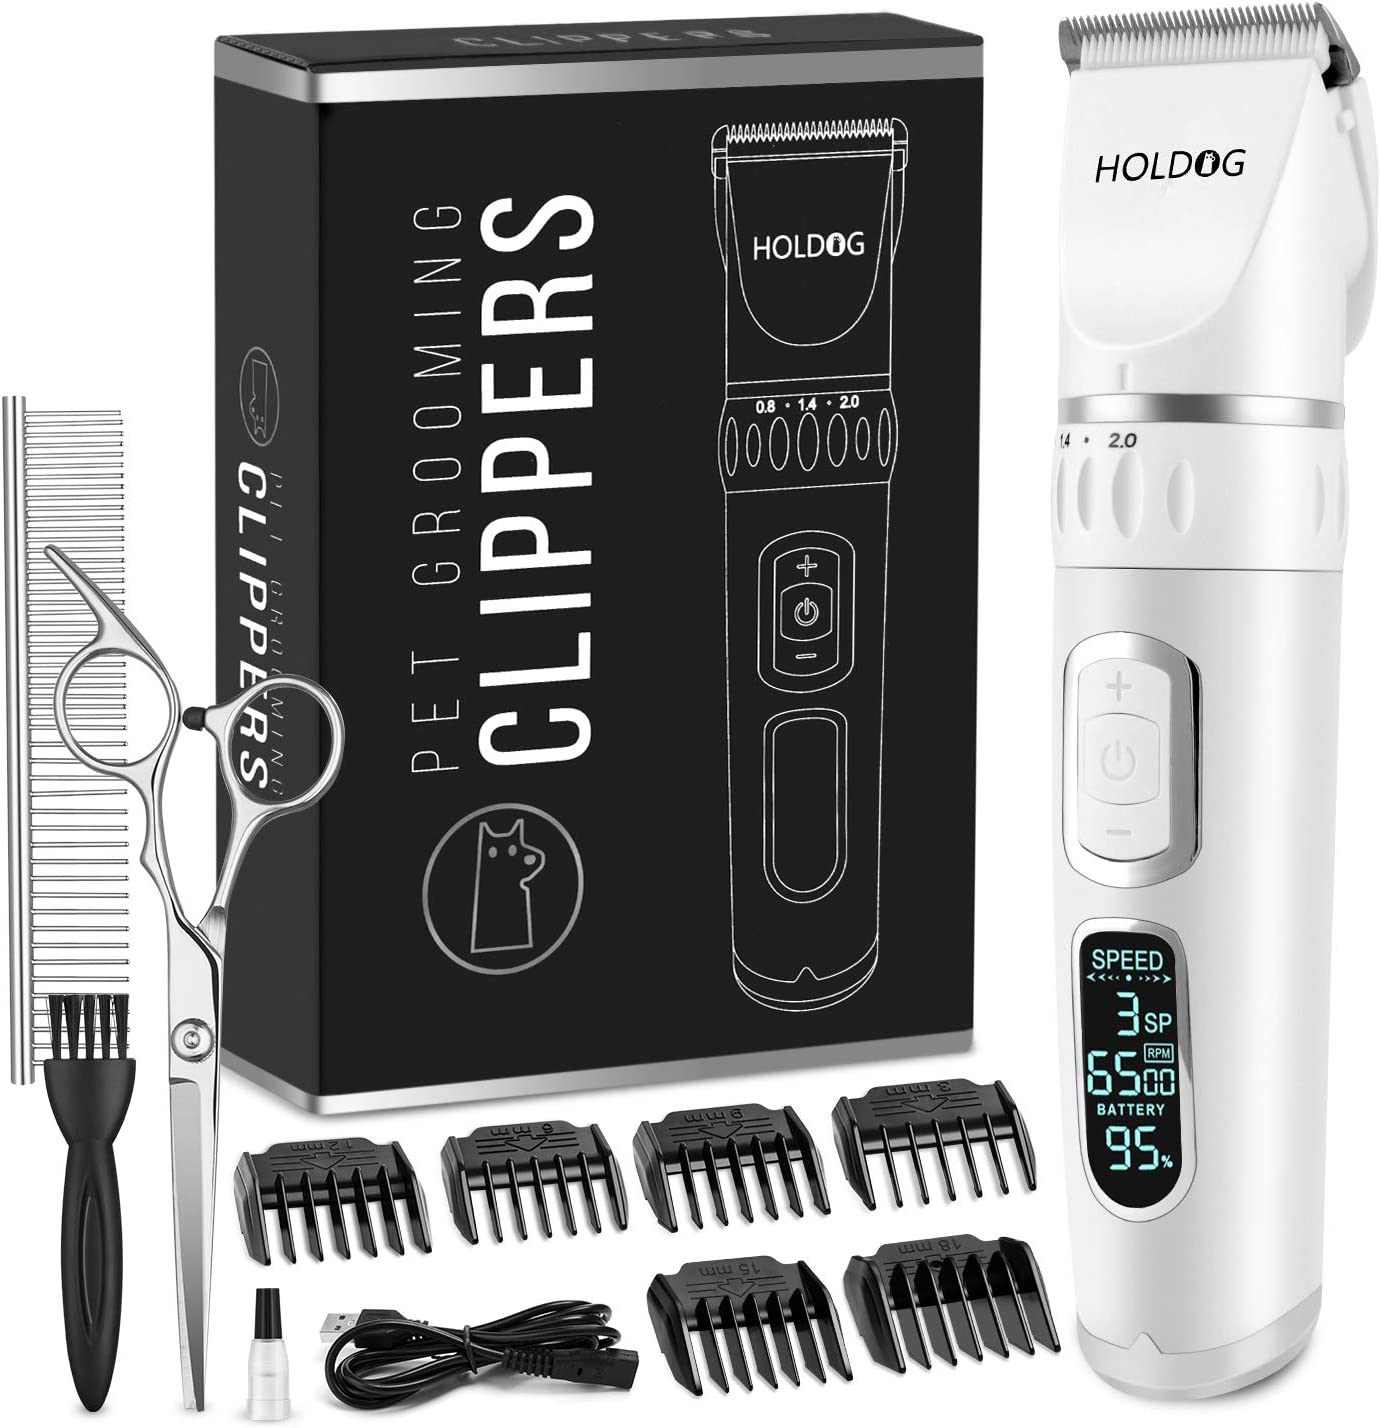 List price Dog Clippers Professional Heavy 3-Spee Duty Clipper Grooming Max 58% OFF